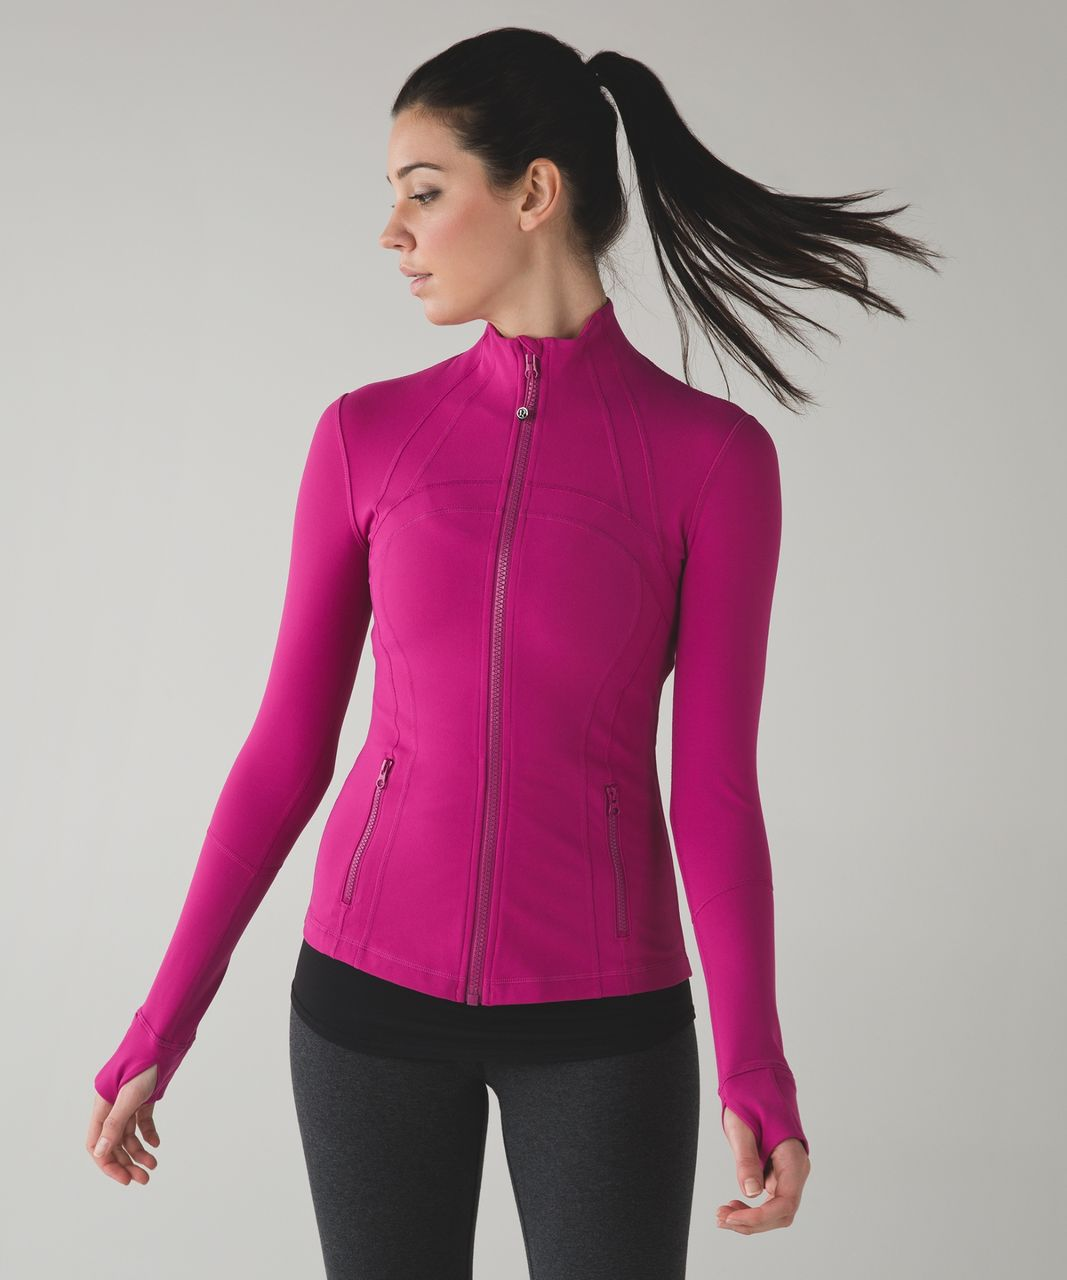 Lululemon Define Jacket - Raspberry